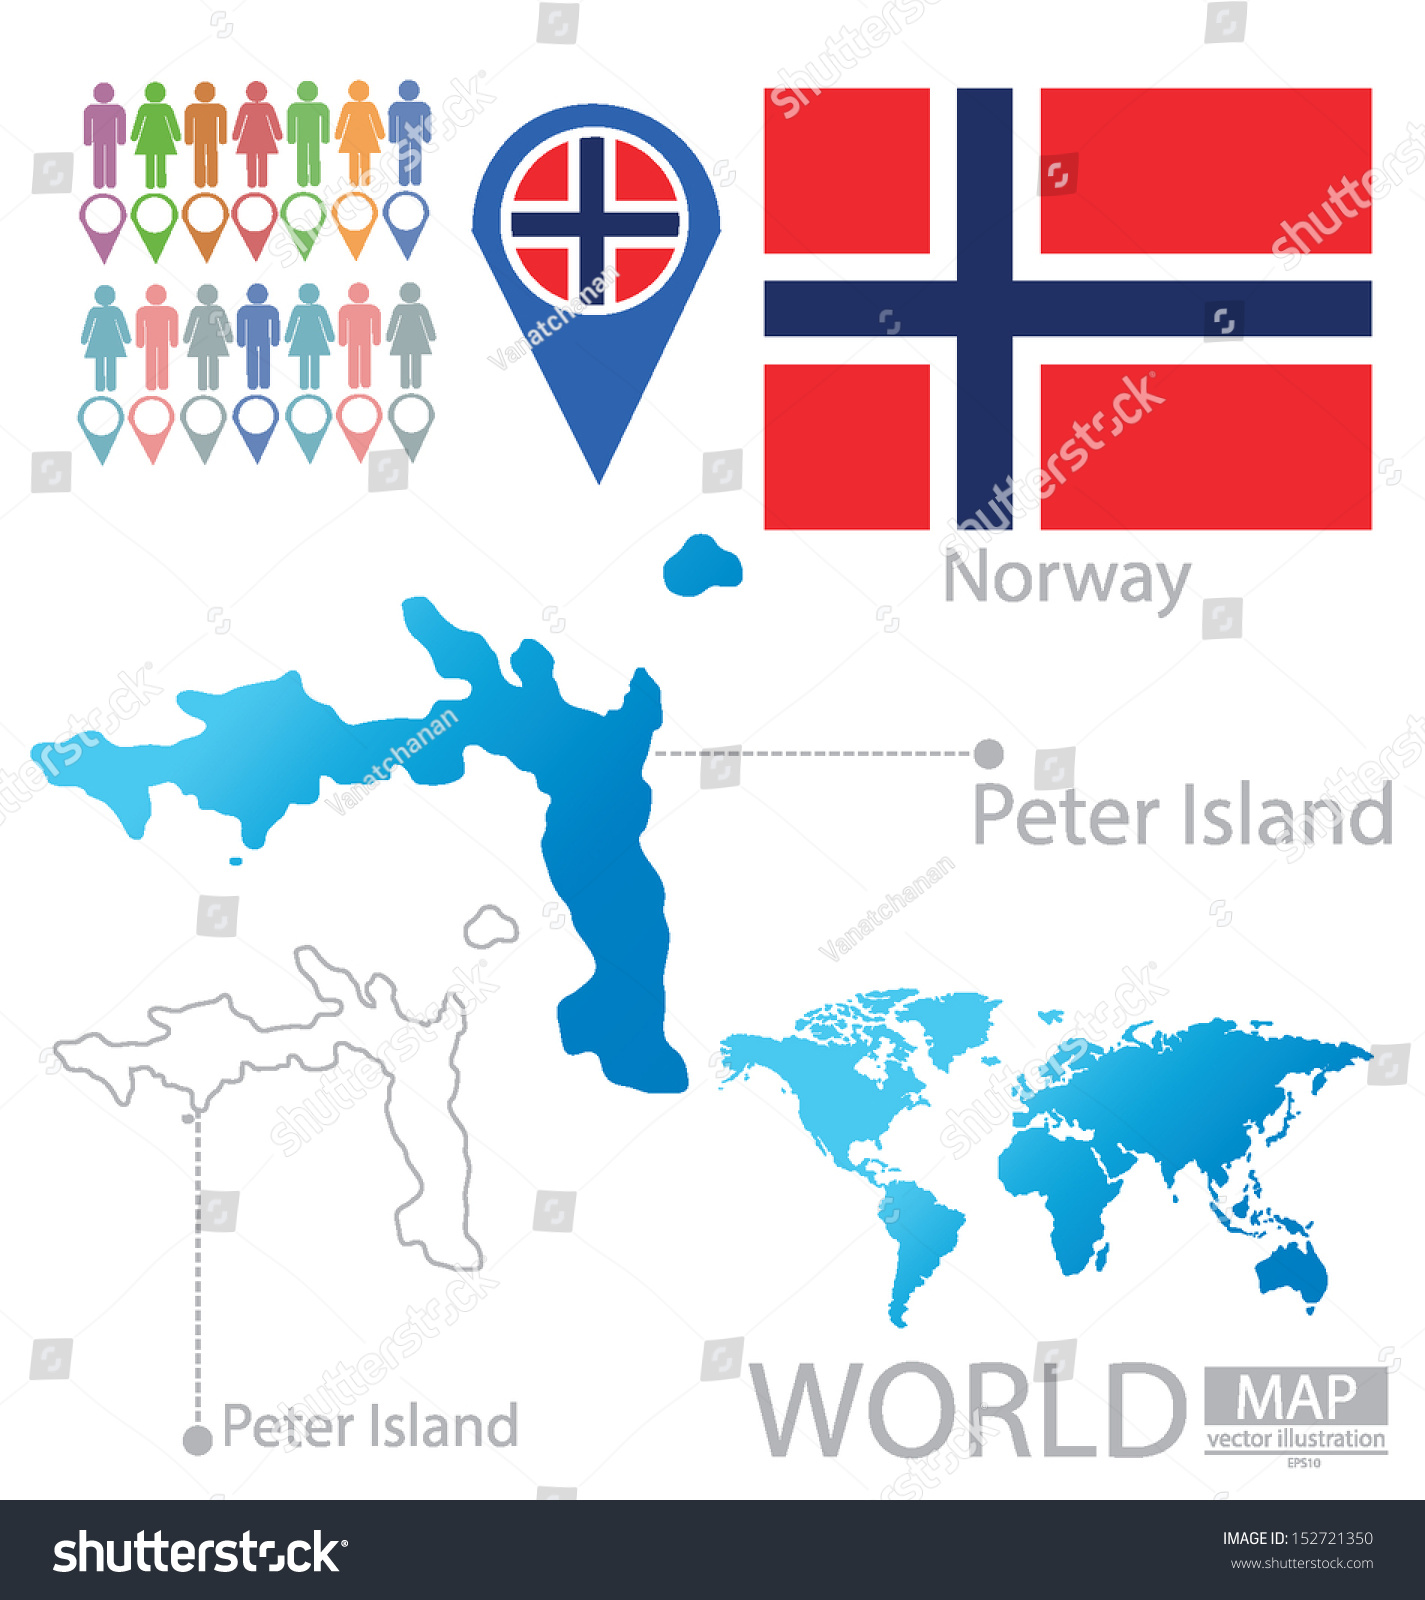 Peter Island Norway Flag World Map Stock Vector 152721350